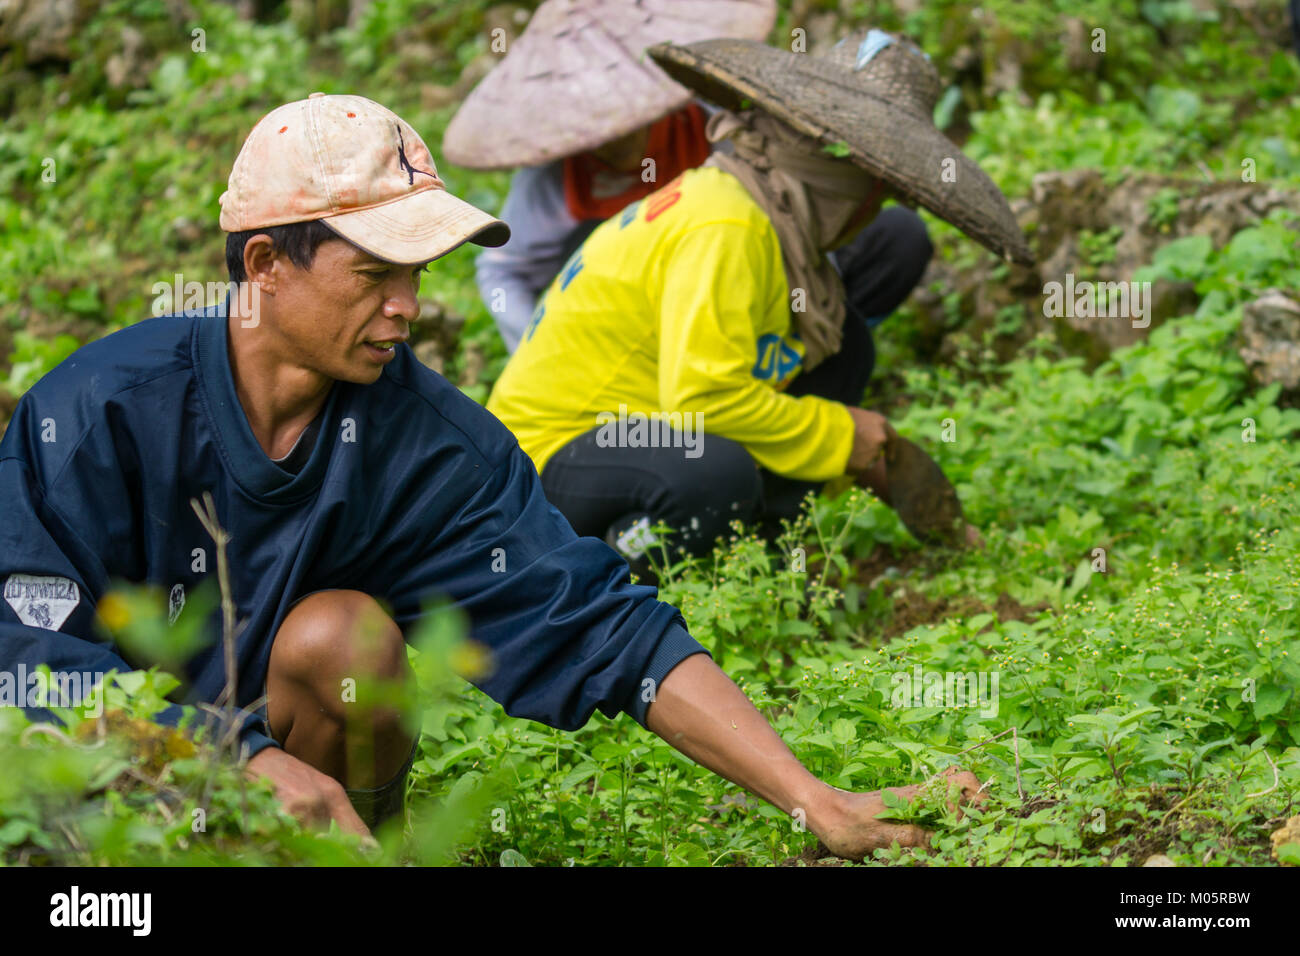 Filipino farm labourers working with a simple hand tool to remove weeds choking young cabbages. - Stock Image